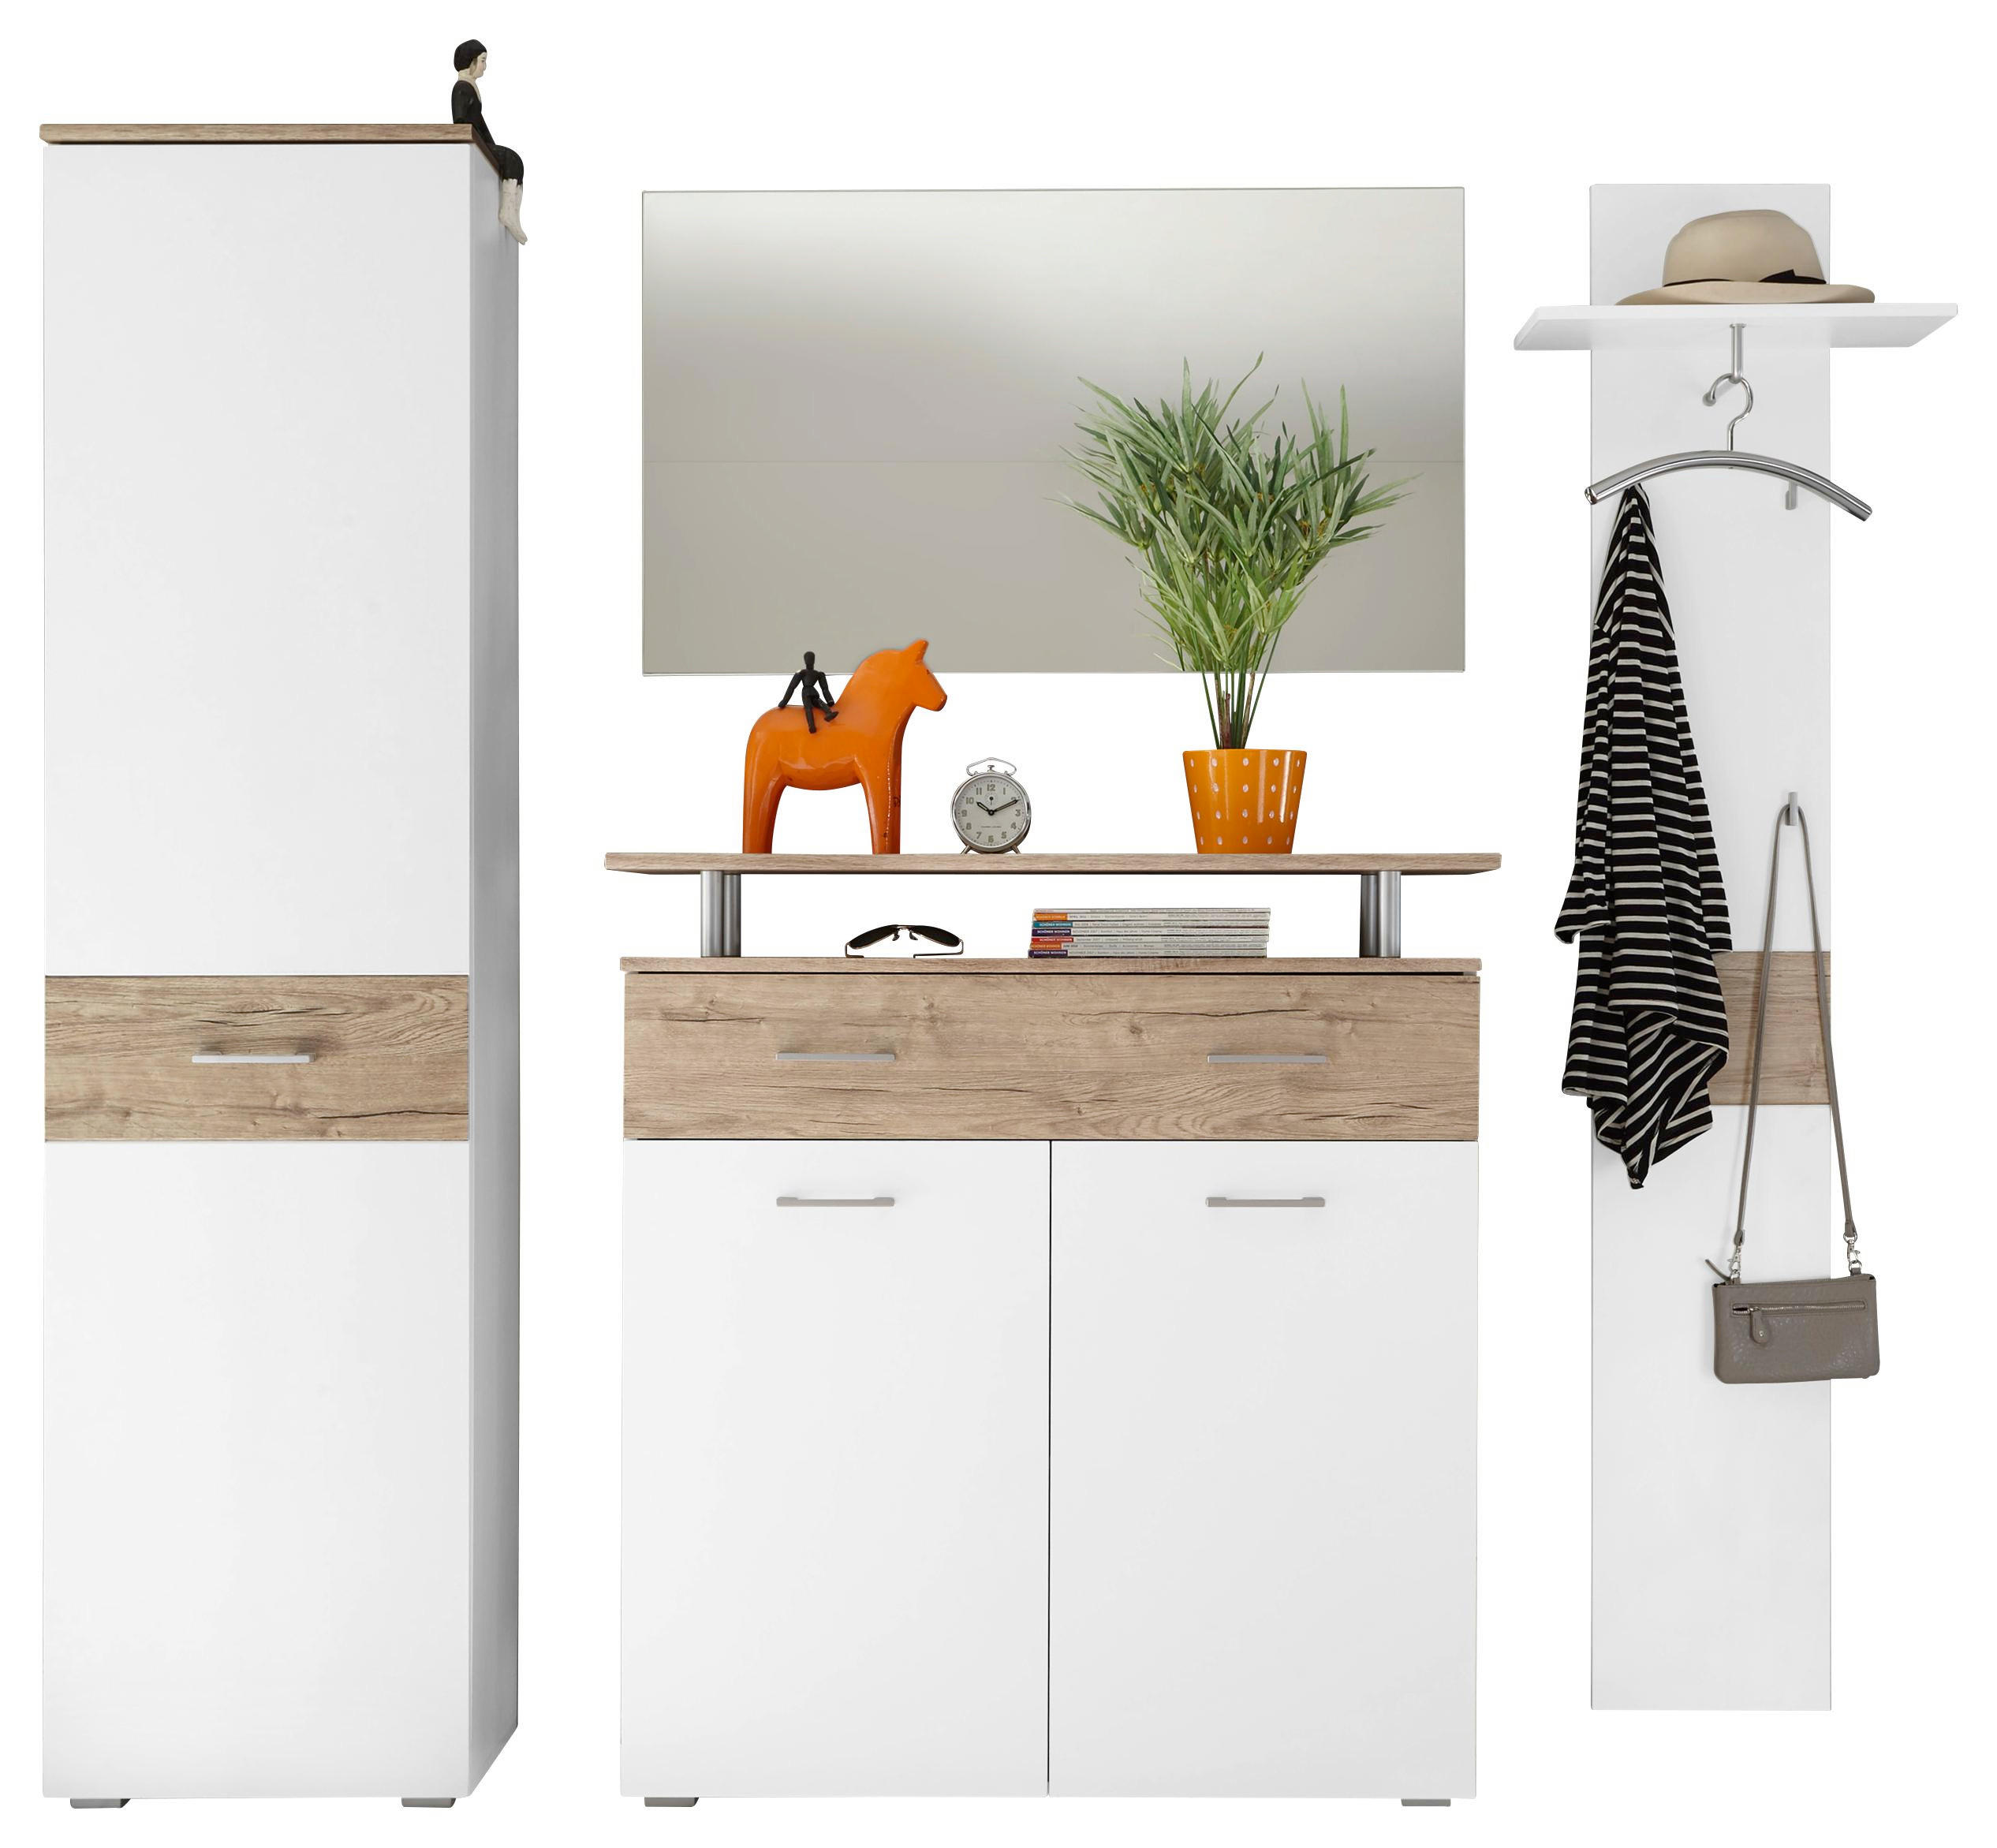 awesome awesome awesome fabulous good garderobe sonoma eiche wei weisonoma eiche glas with eiche garderobe with sonoma eiche with segmller vitrine with